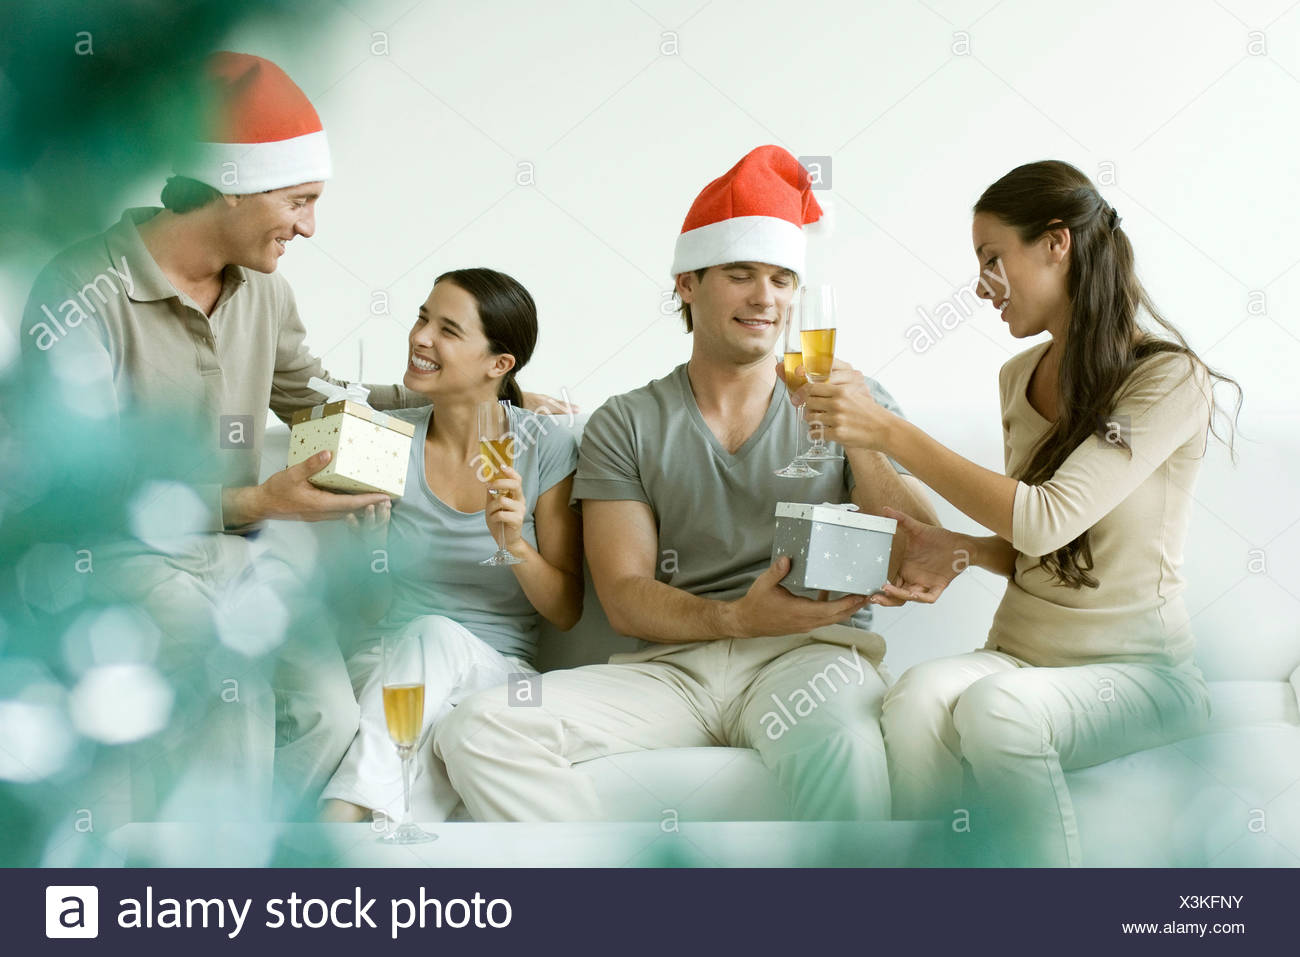 Two couples exchanging Christmas gifts, drinking champagne, men wearing Santa hats - Stock Image